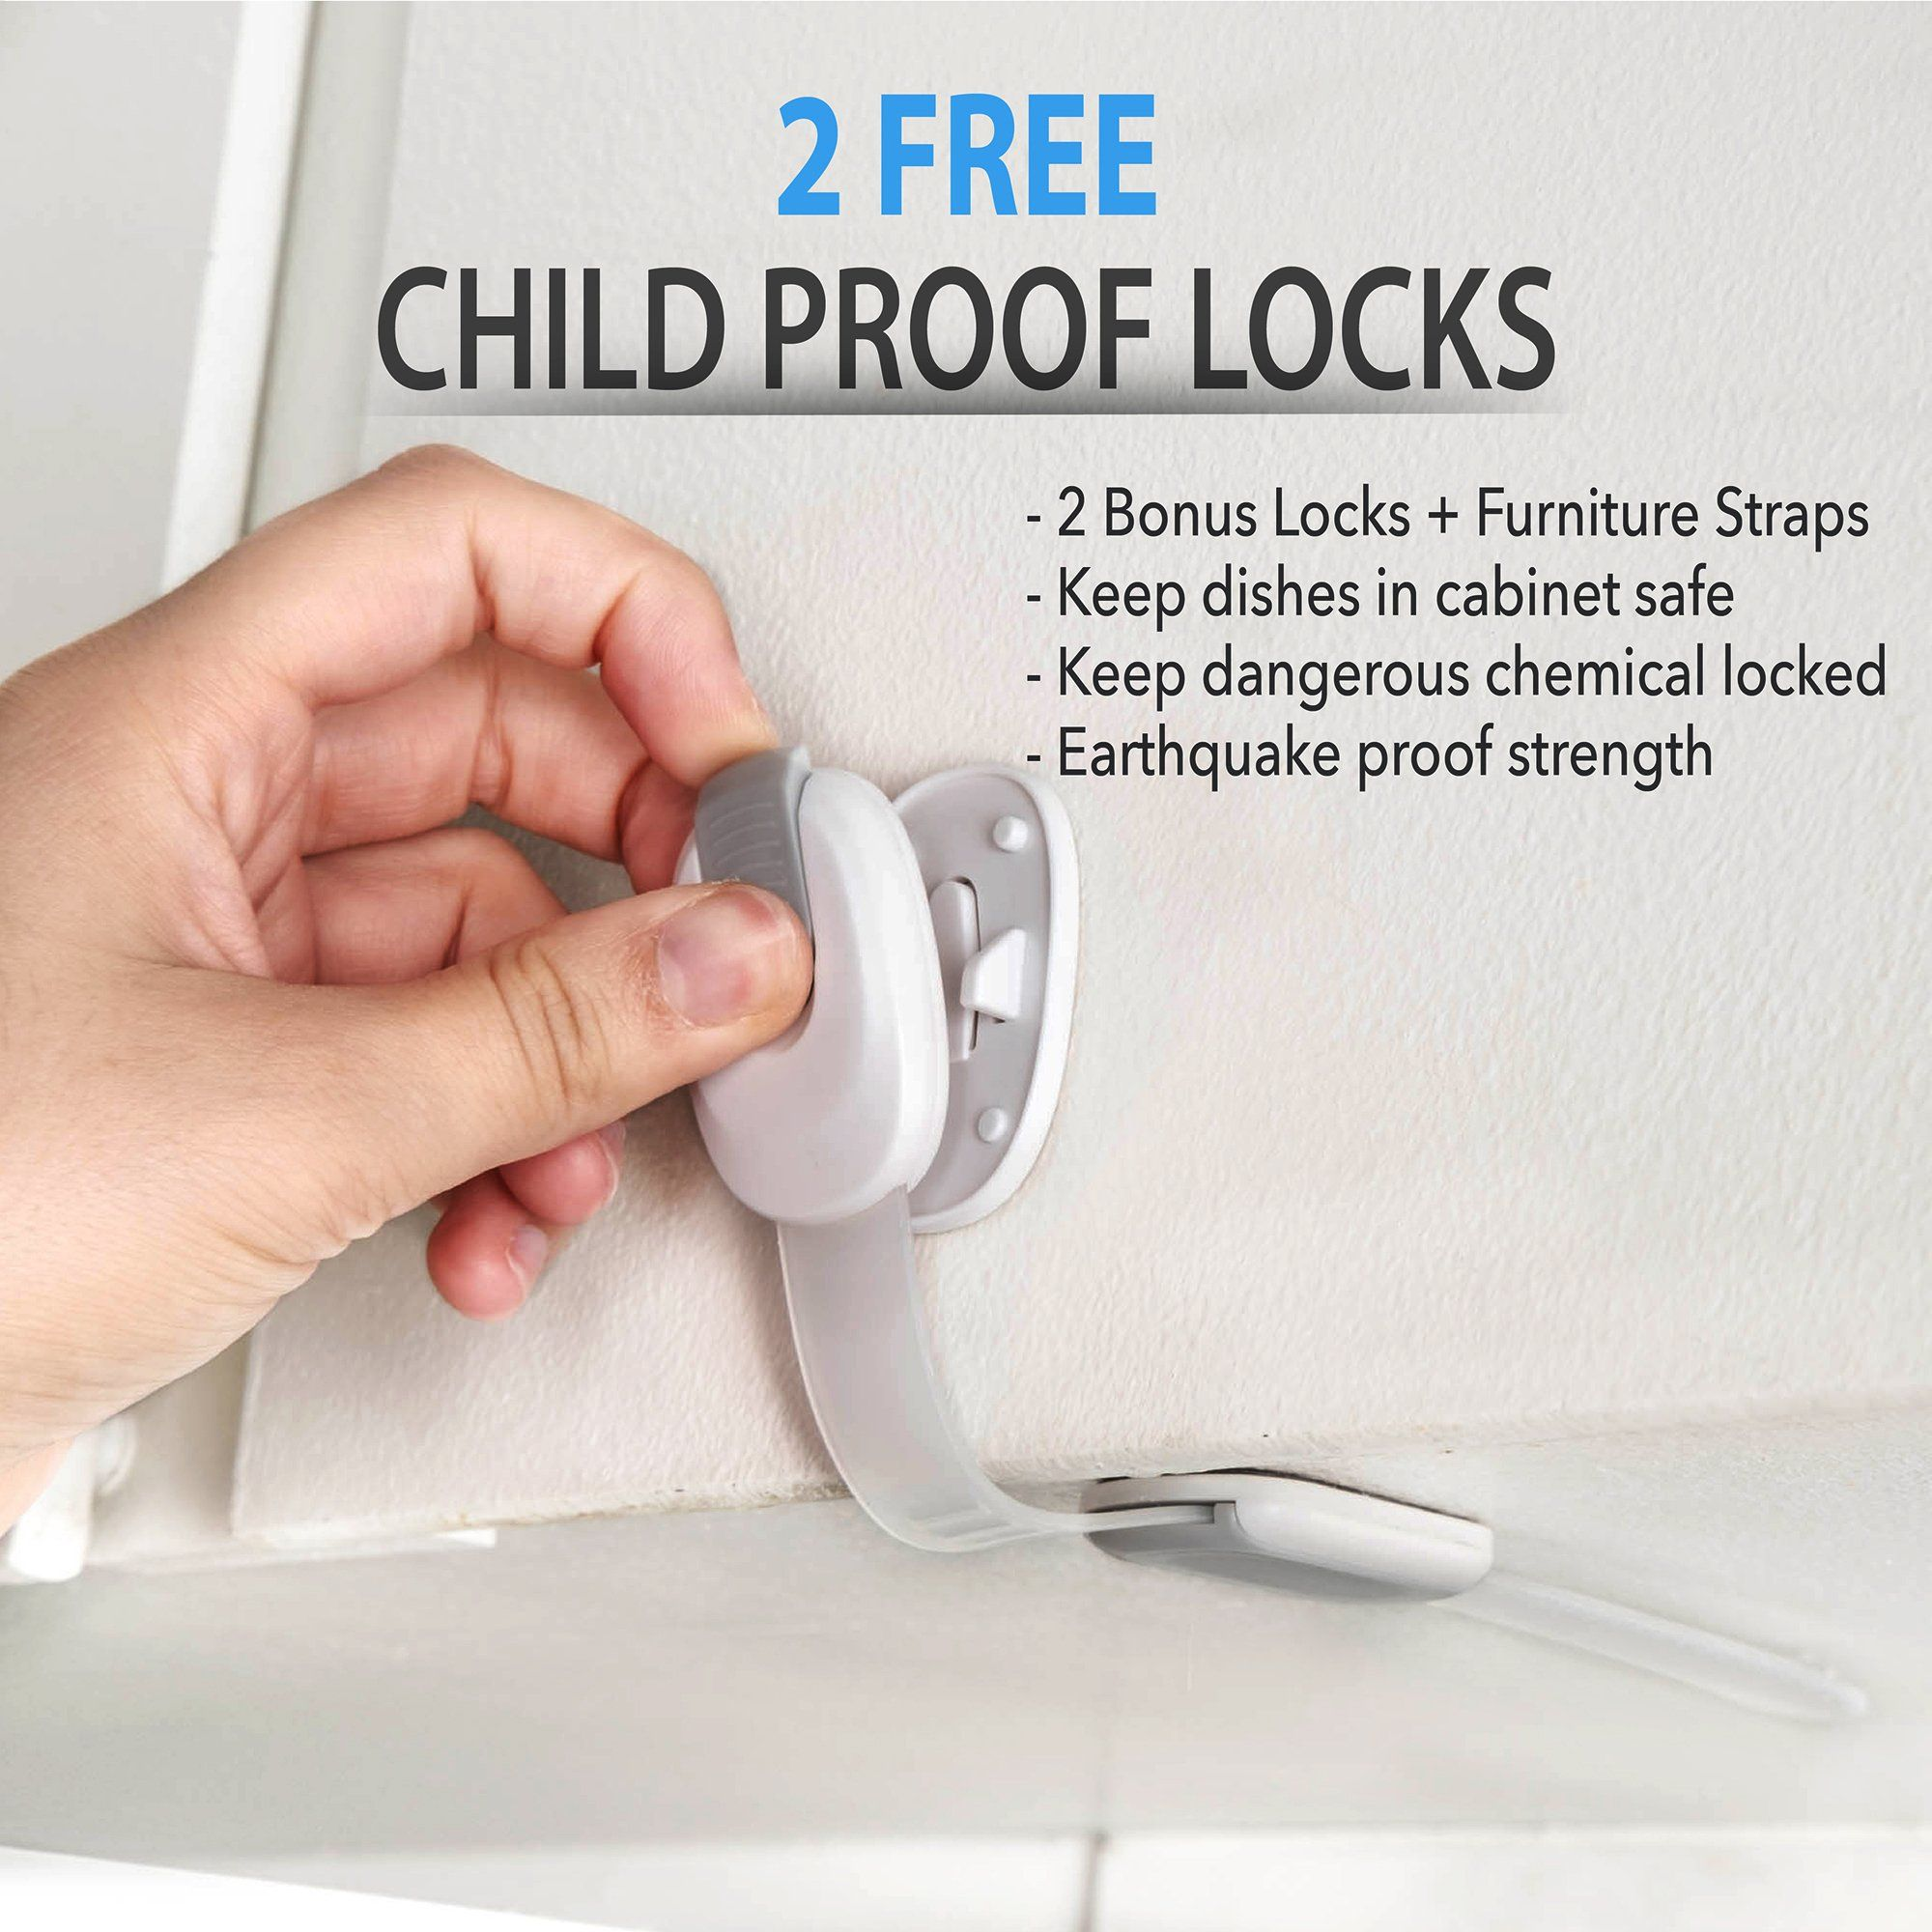 Furniture Anchors Straps Baby Proofing A Tv Anti Tip Strap Kit A 8 Pack A Keep Children Safe From Falling A A Furniture Anchors Baby Proofing Kids Safe